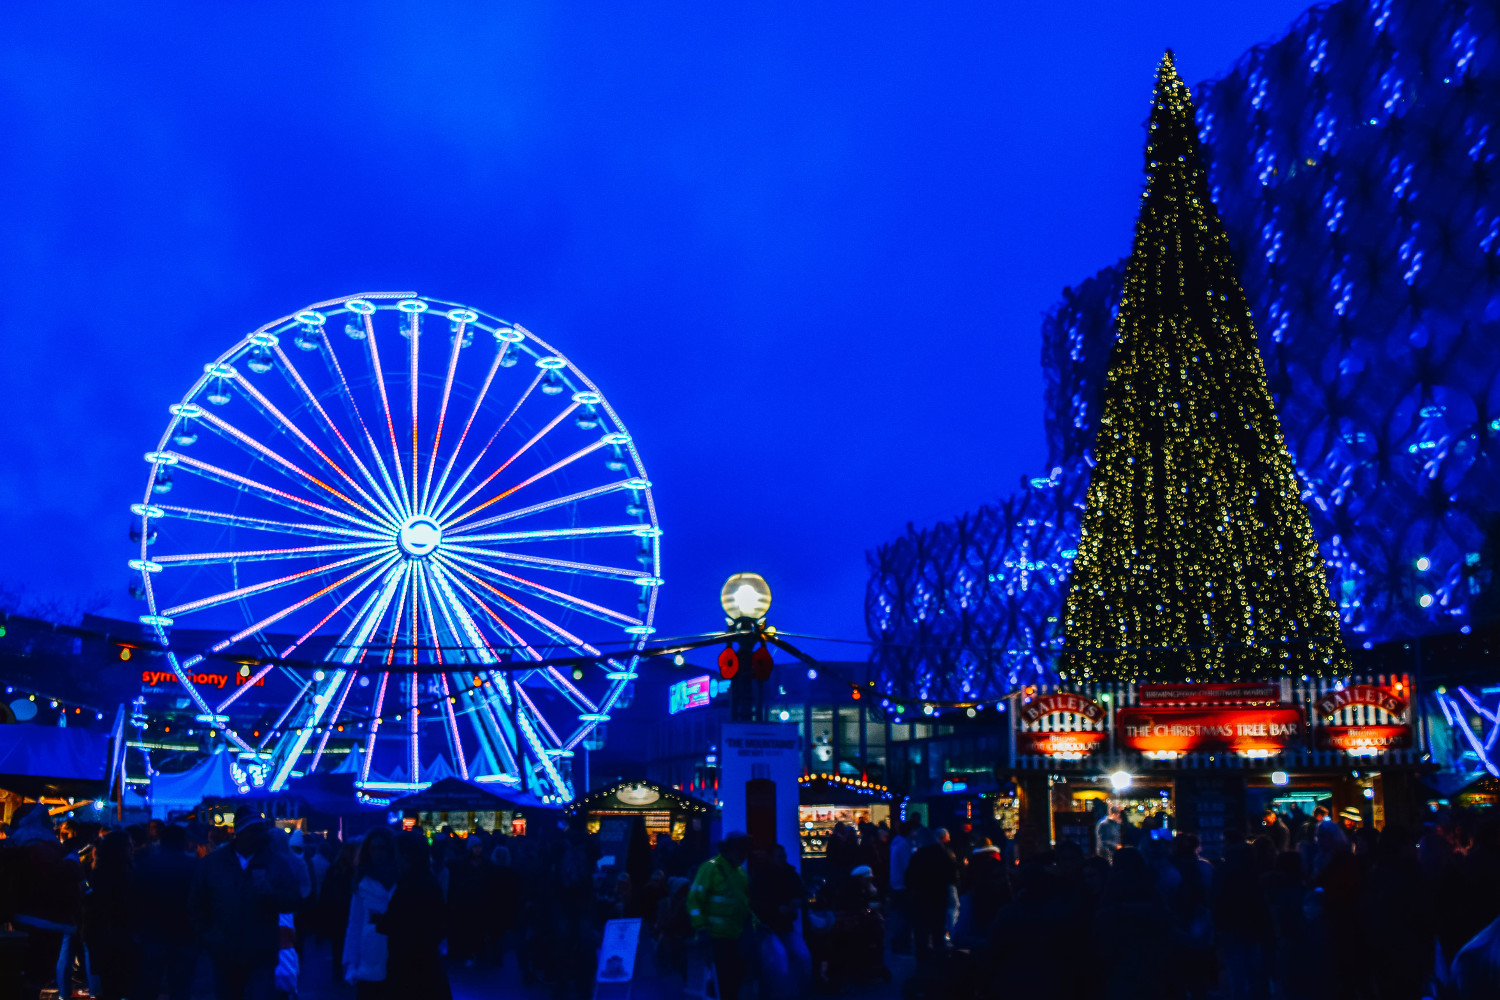 The Birmingham Frankfurt Christmas Market, UK is one of the best Christmas Markets in Europe. Read the article and see the top Christmas markets in Europe. #christmas #christmasholidays #christmastrips #europemarkets #europechristmasmarkets #christmasmarkets